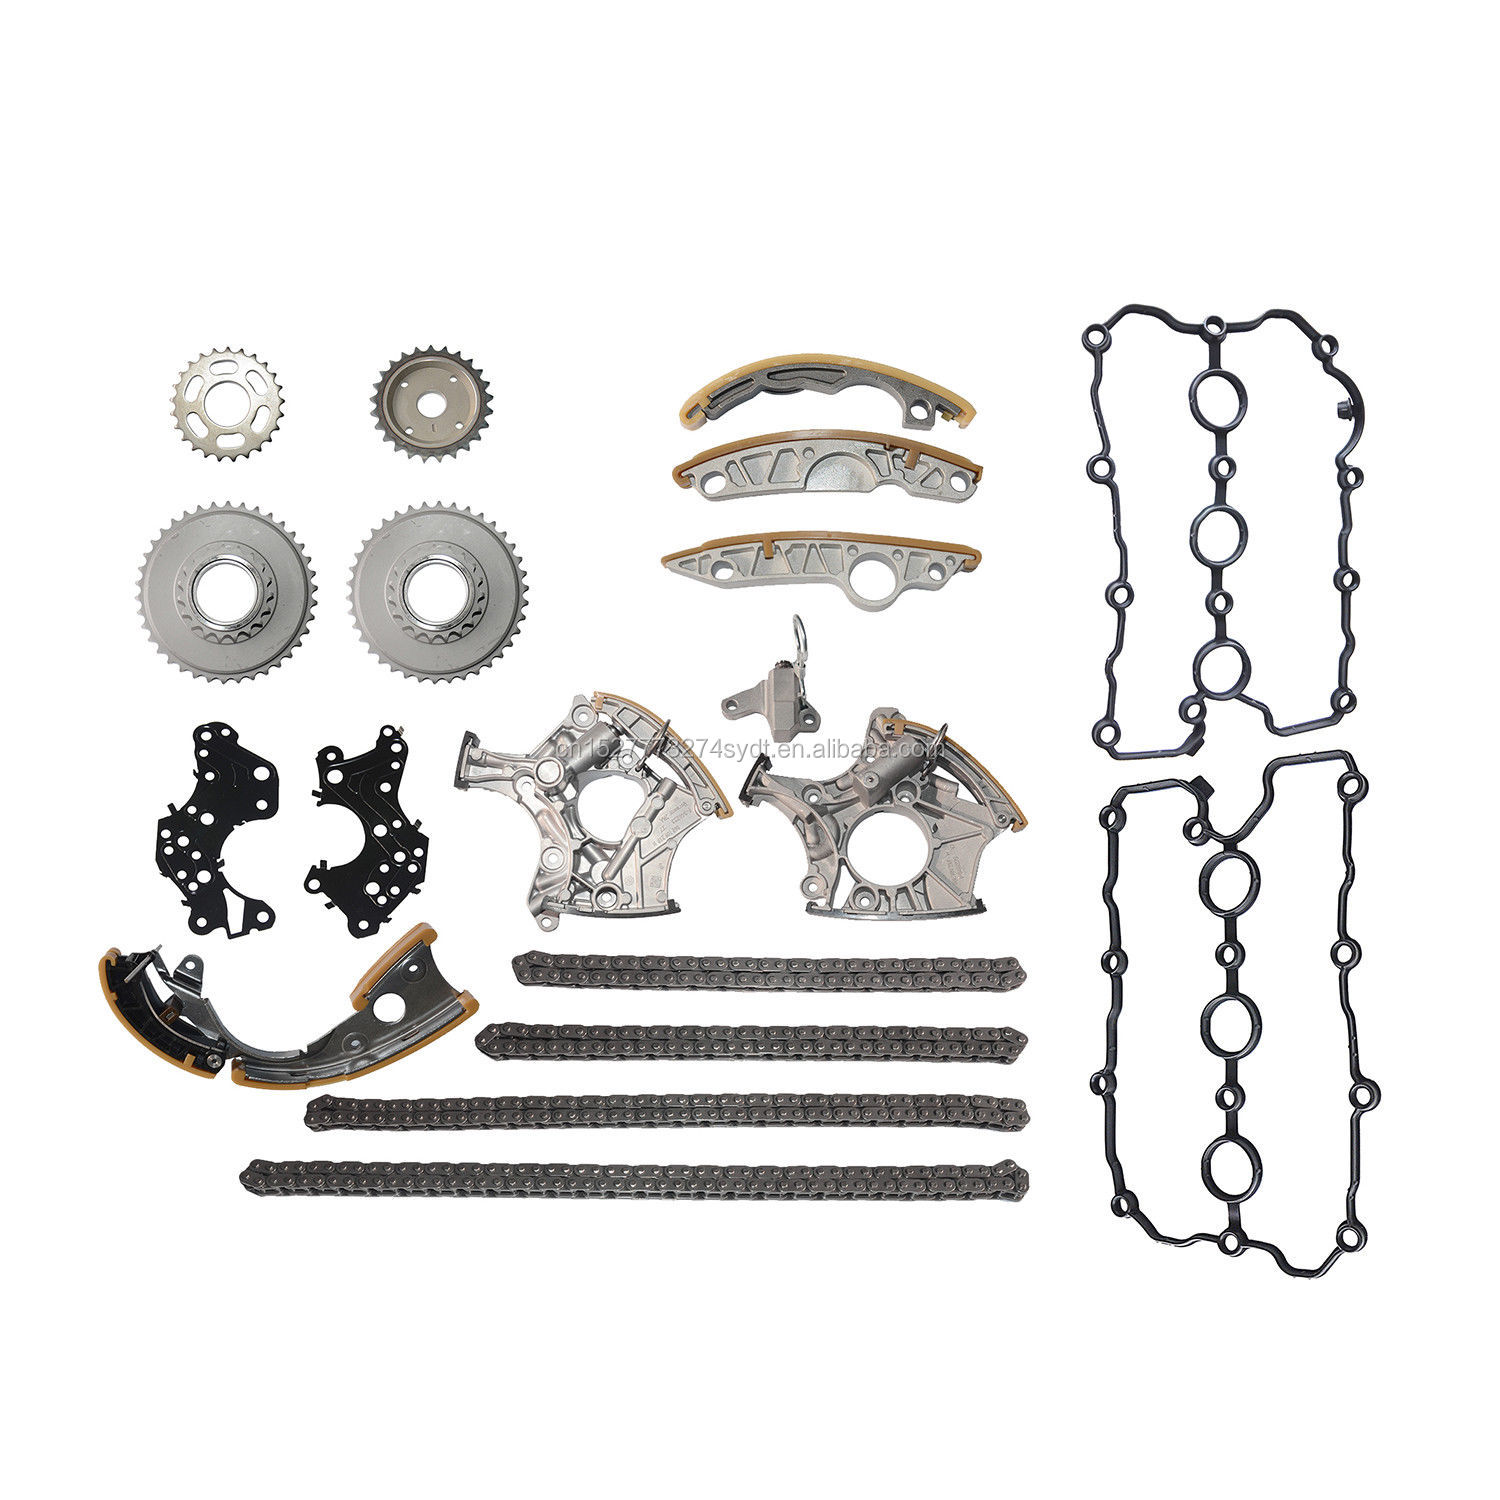 Full Kit Timing Chain Tensioner Gasket A4 A6 Q7 A8 R8 2.4l